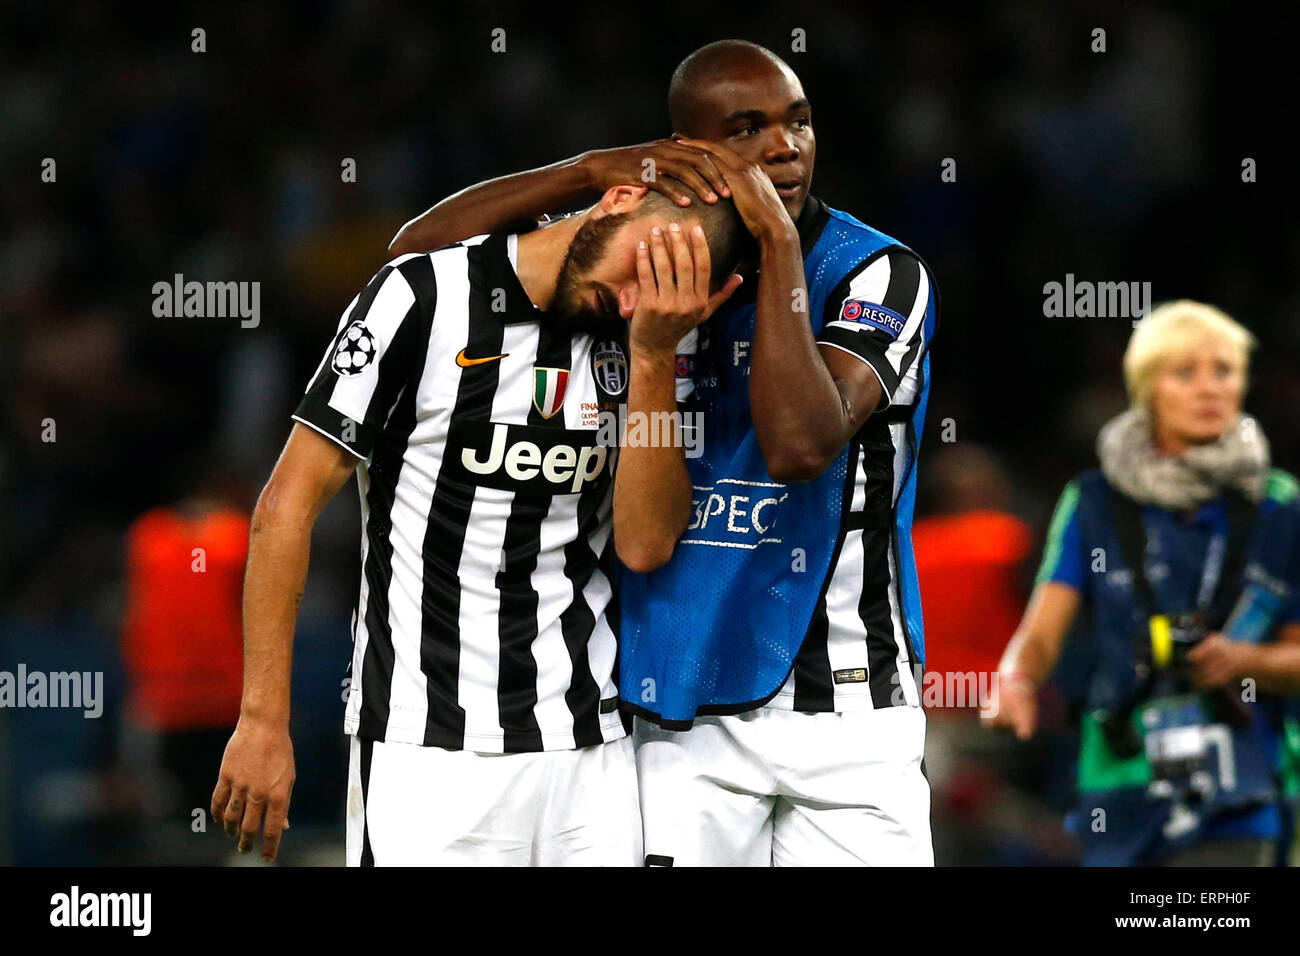 Berlin (Allemagne). 06 juin 2015. Football / Soccer : Ligue des Champions - La Juventus en finale contre Barcelone Photo Stock